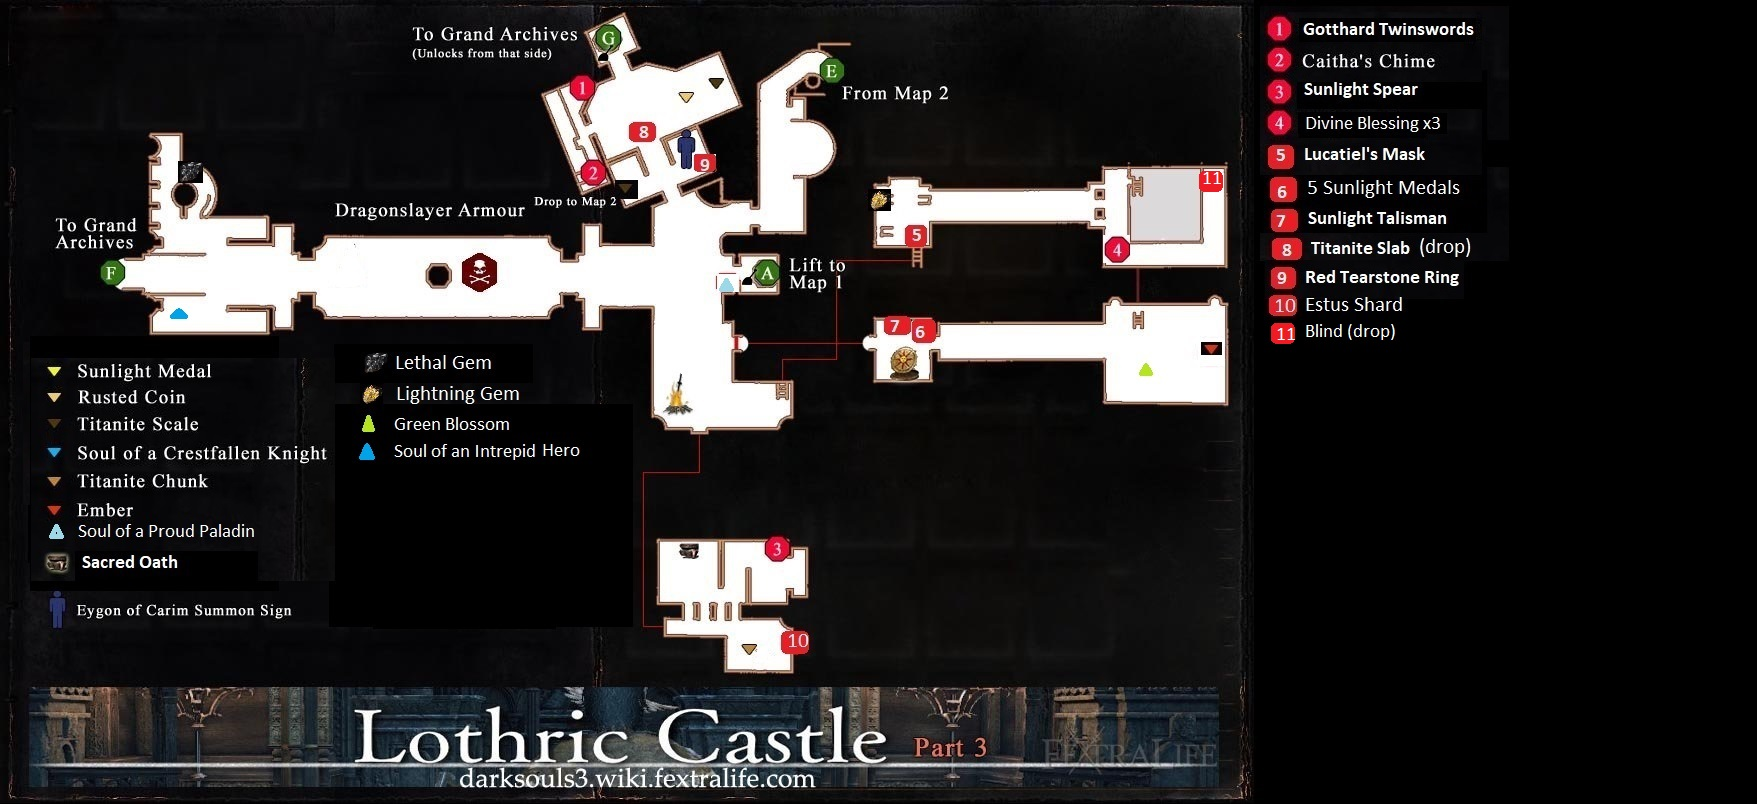 lothric_castle_map3.jpg